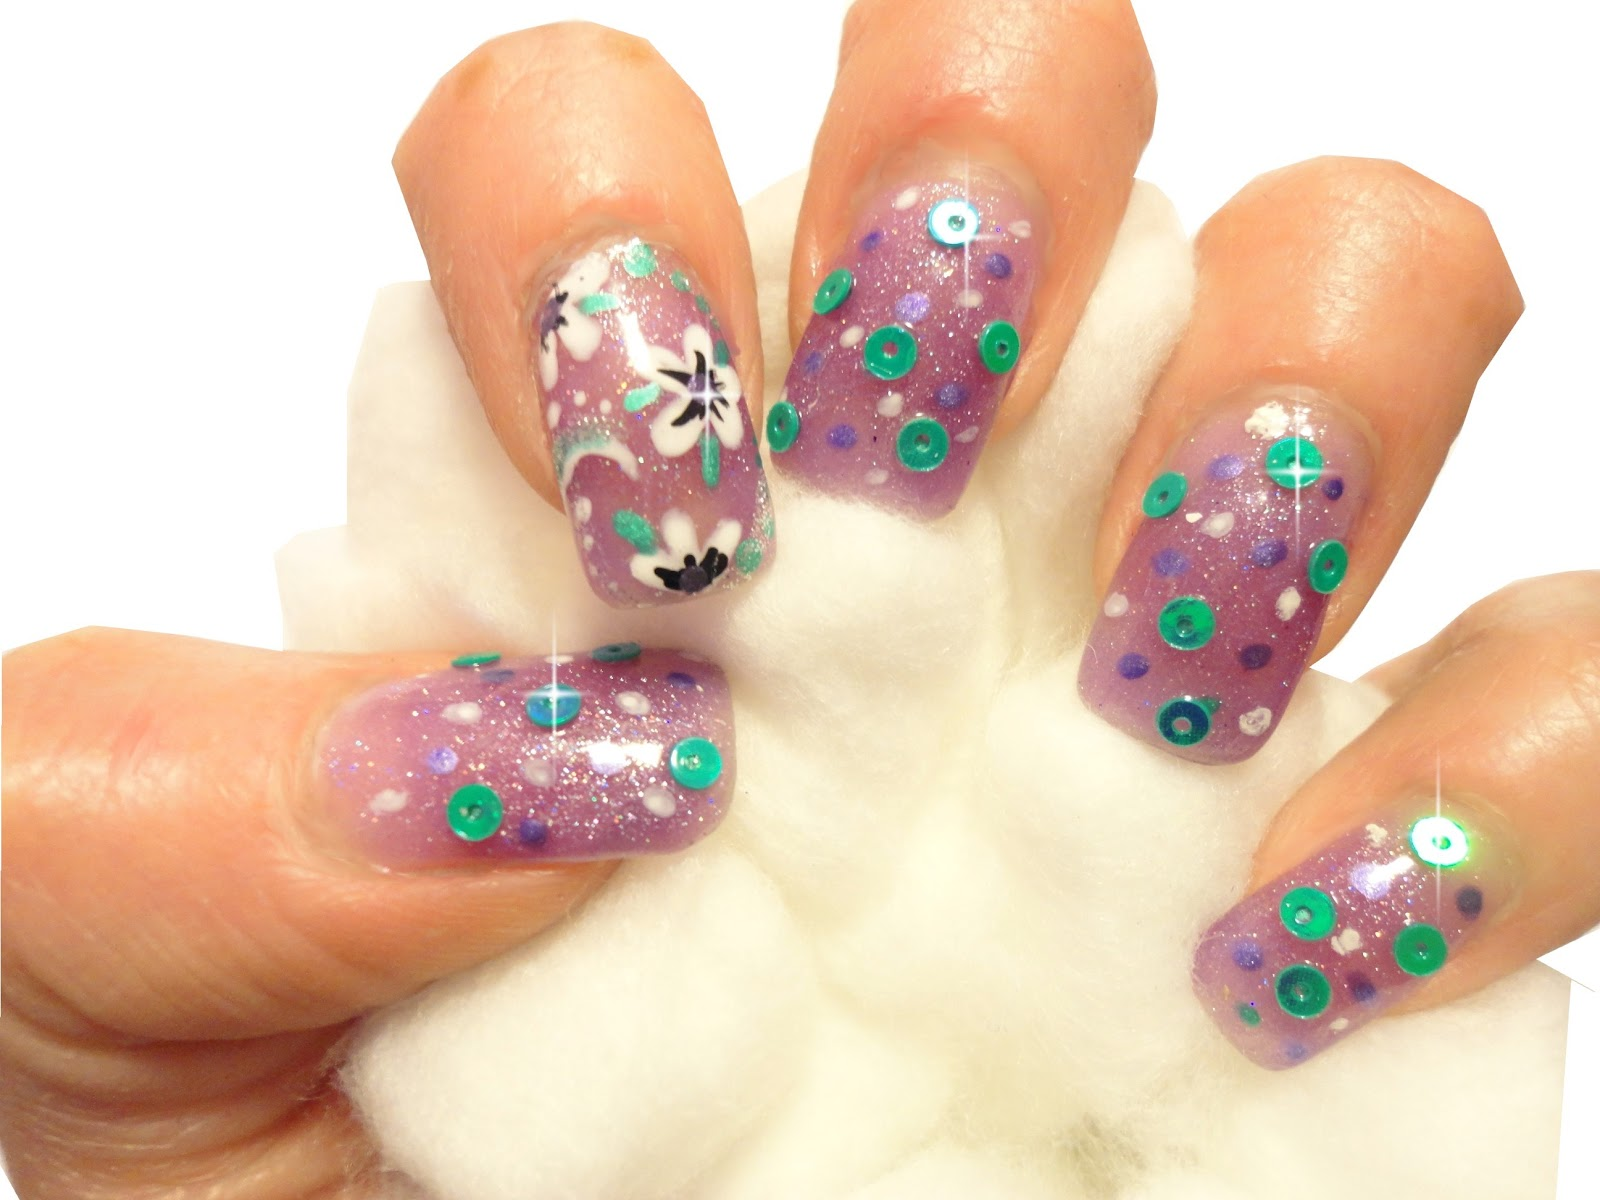 35 Floral Nail Art Ideas for Girls